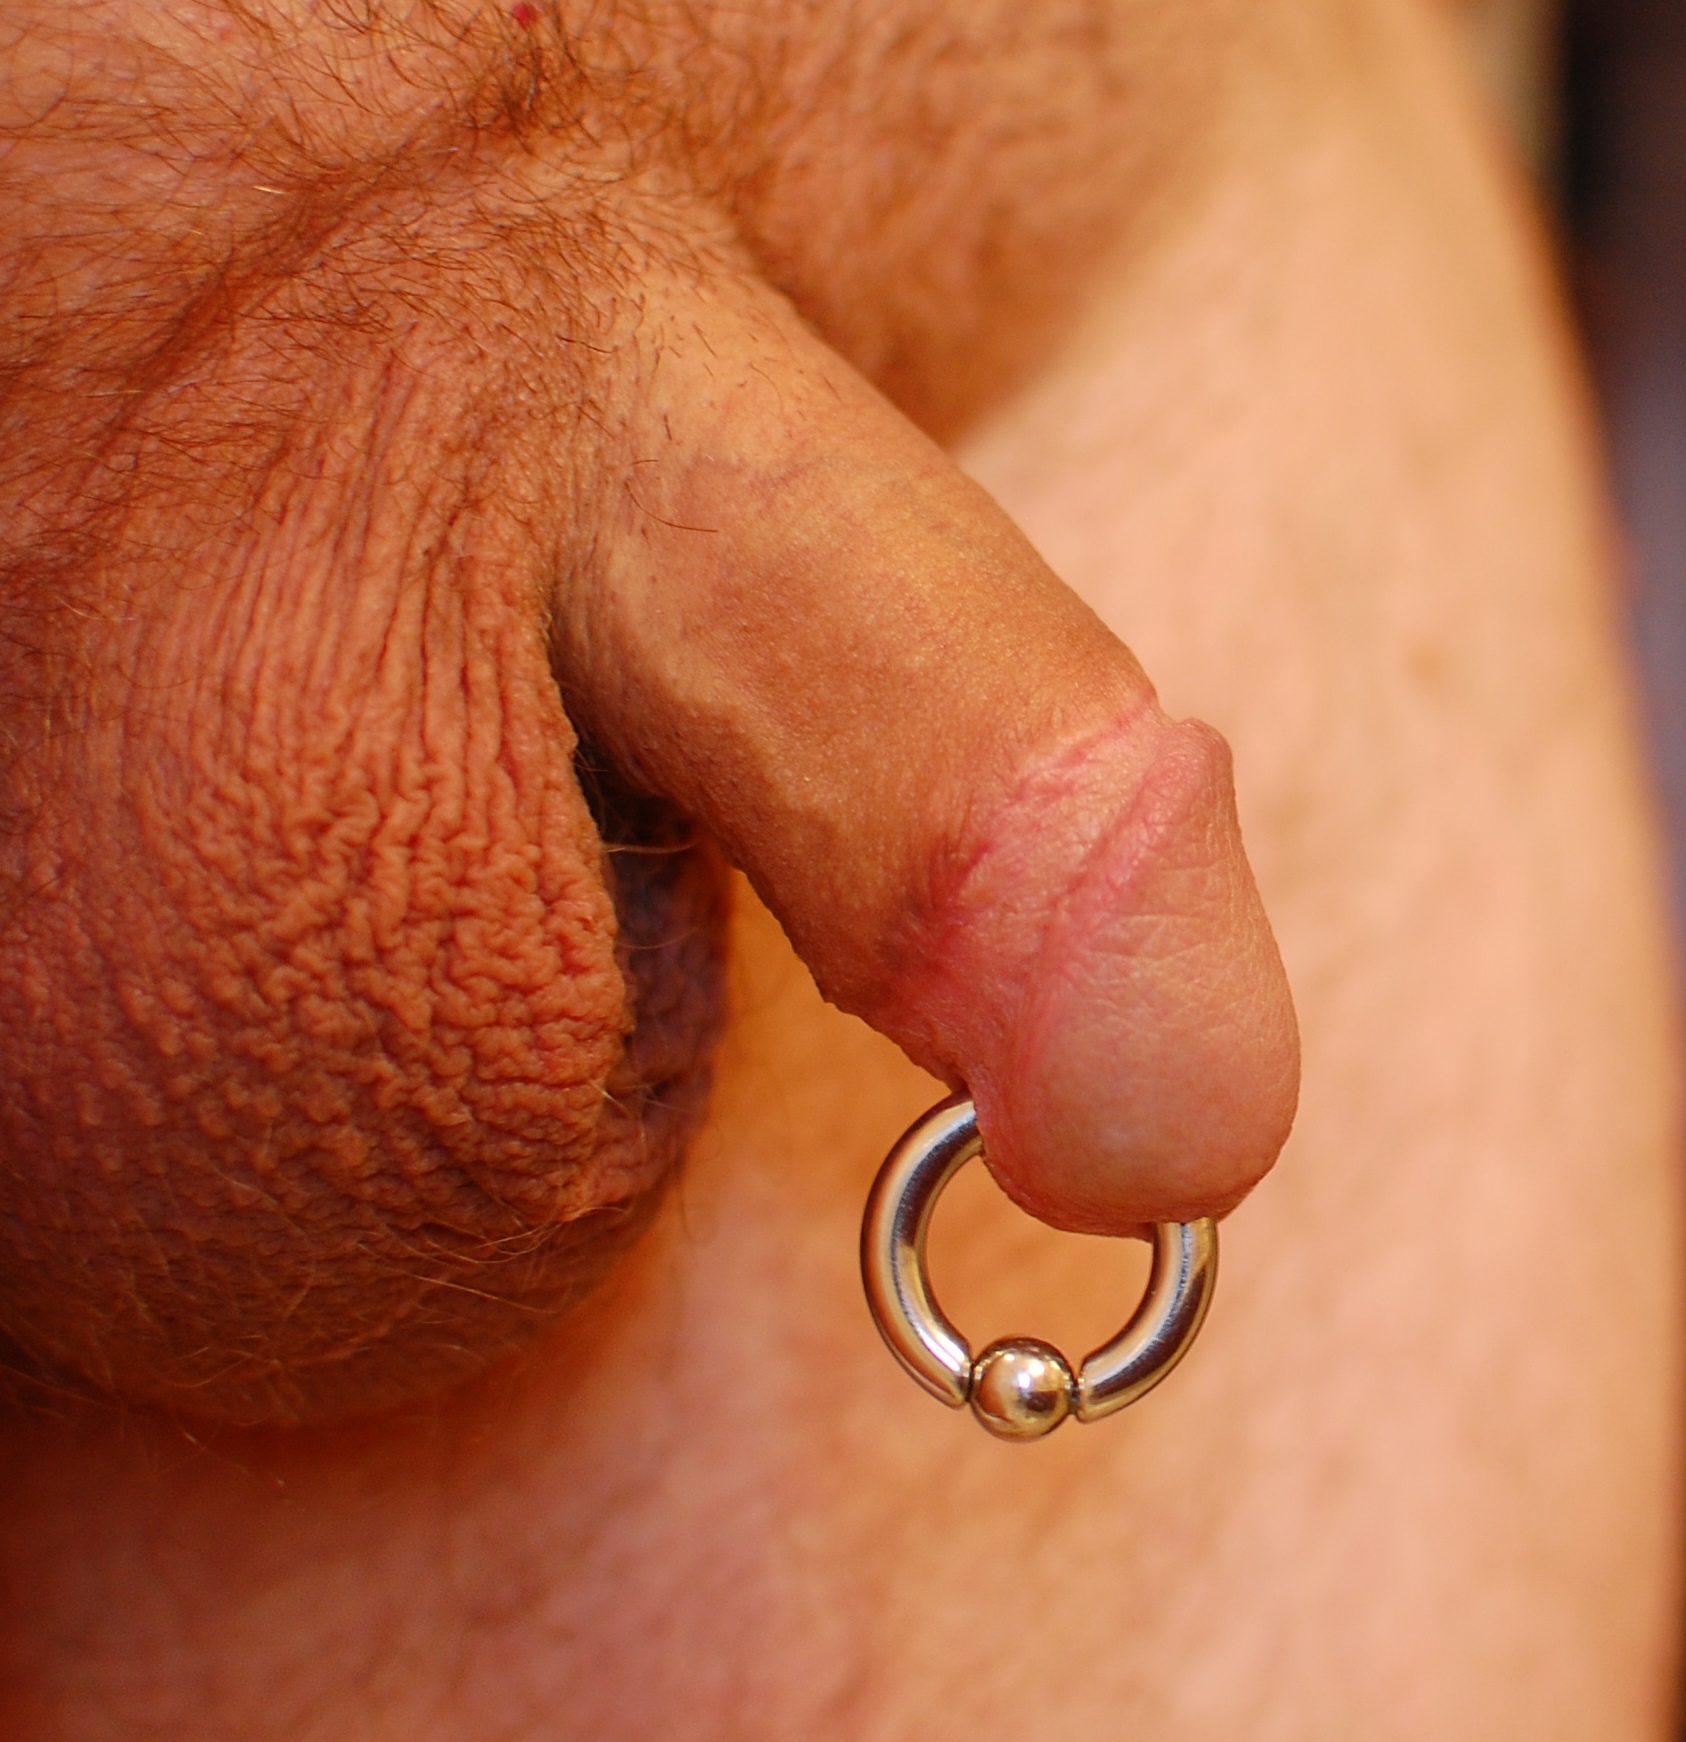 Sex with a prince albert piercing